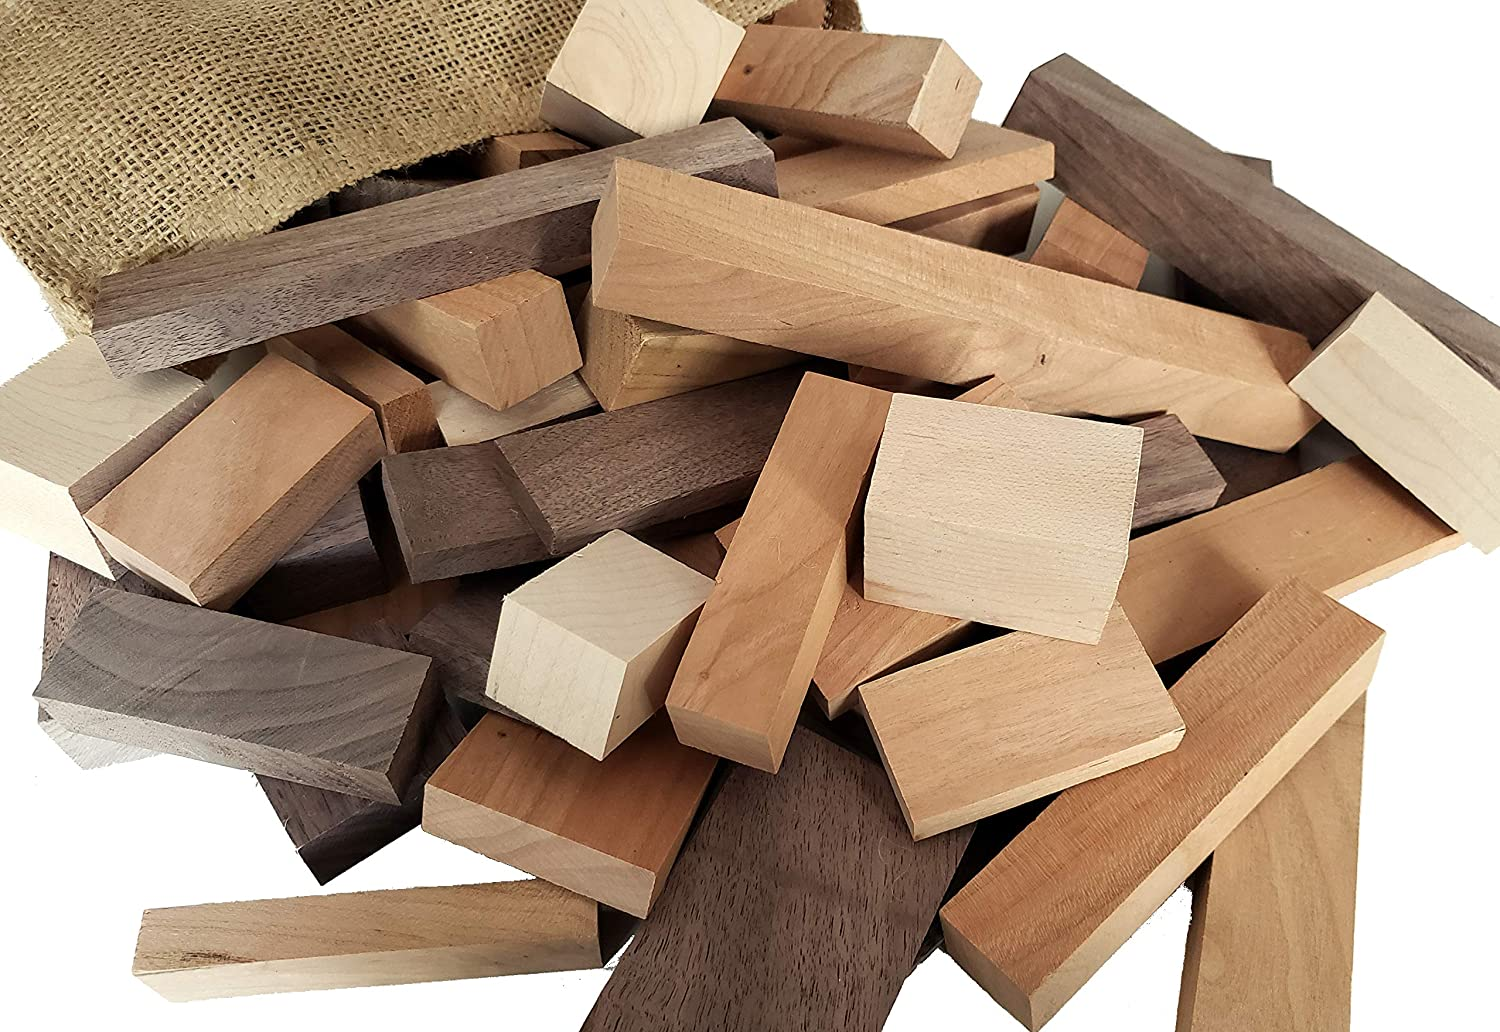 Wooden Blocks 5 Regular store Pounds Free shipping of Premium Assorted Sizes N Hardwood in